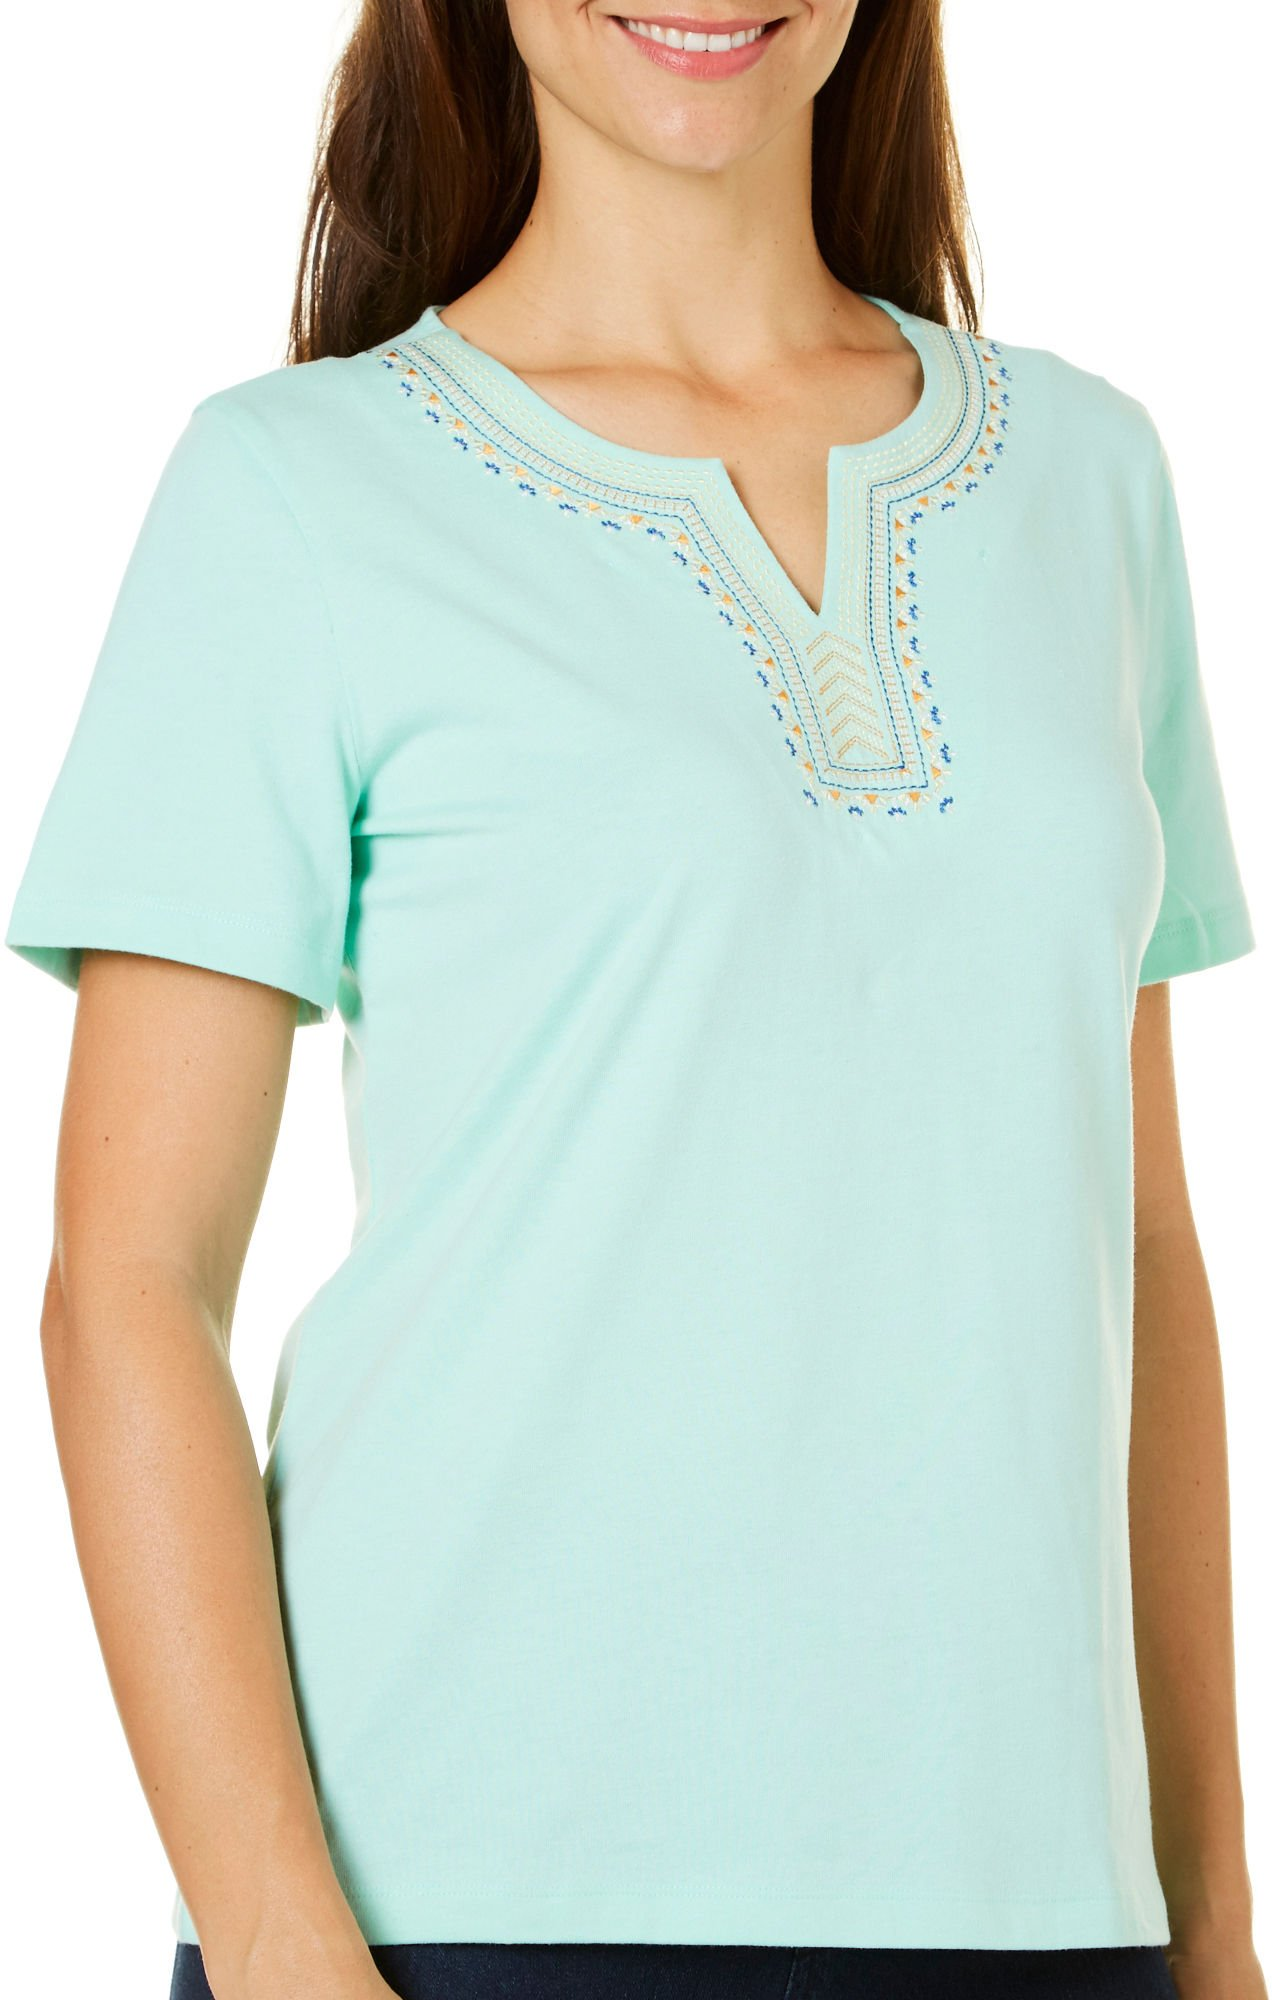 Coral Bay Petite Embroidered Calypso Top X-Large Petite Beach Glass Teal Blue